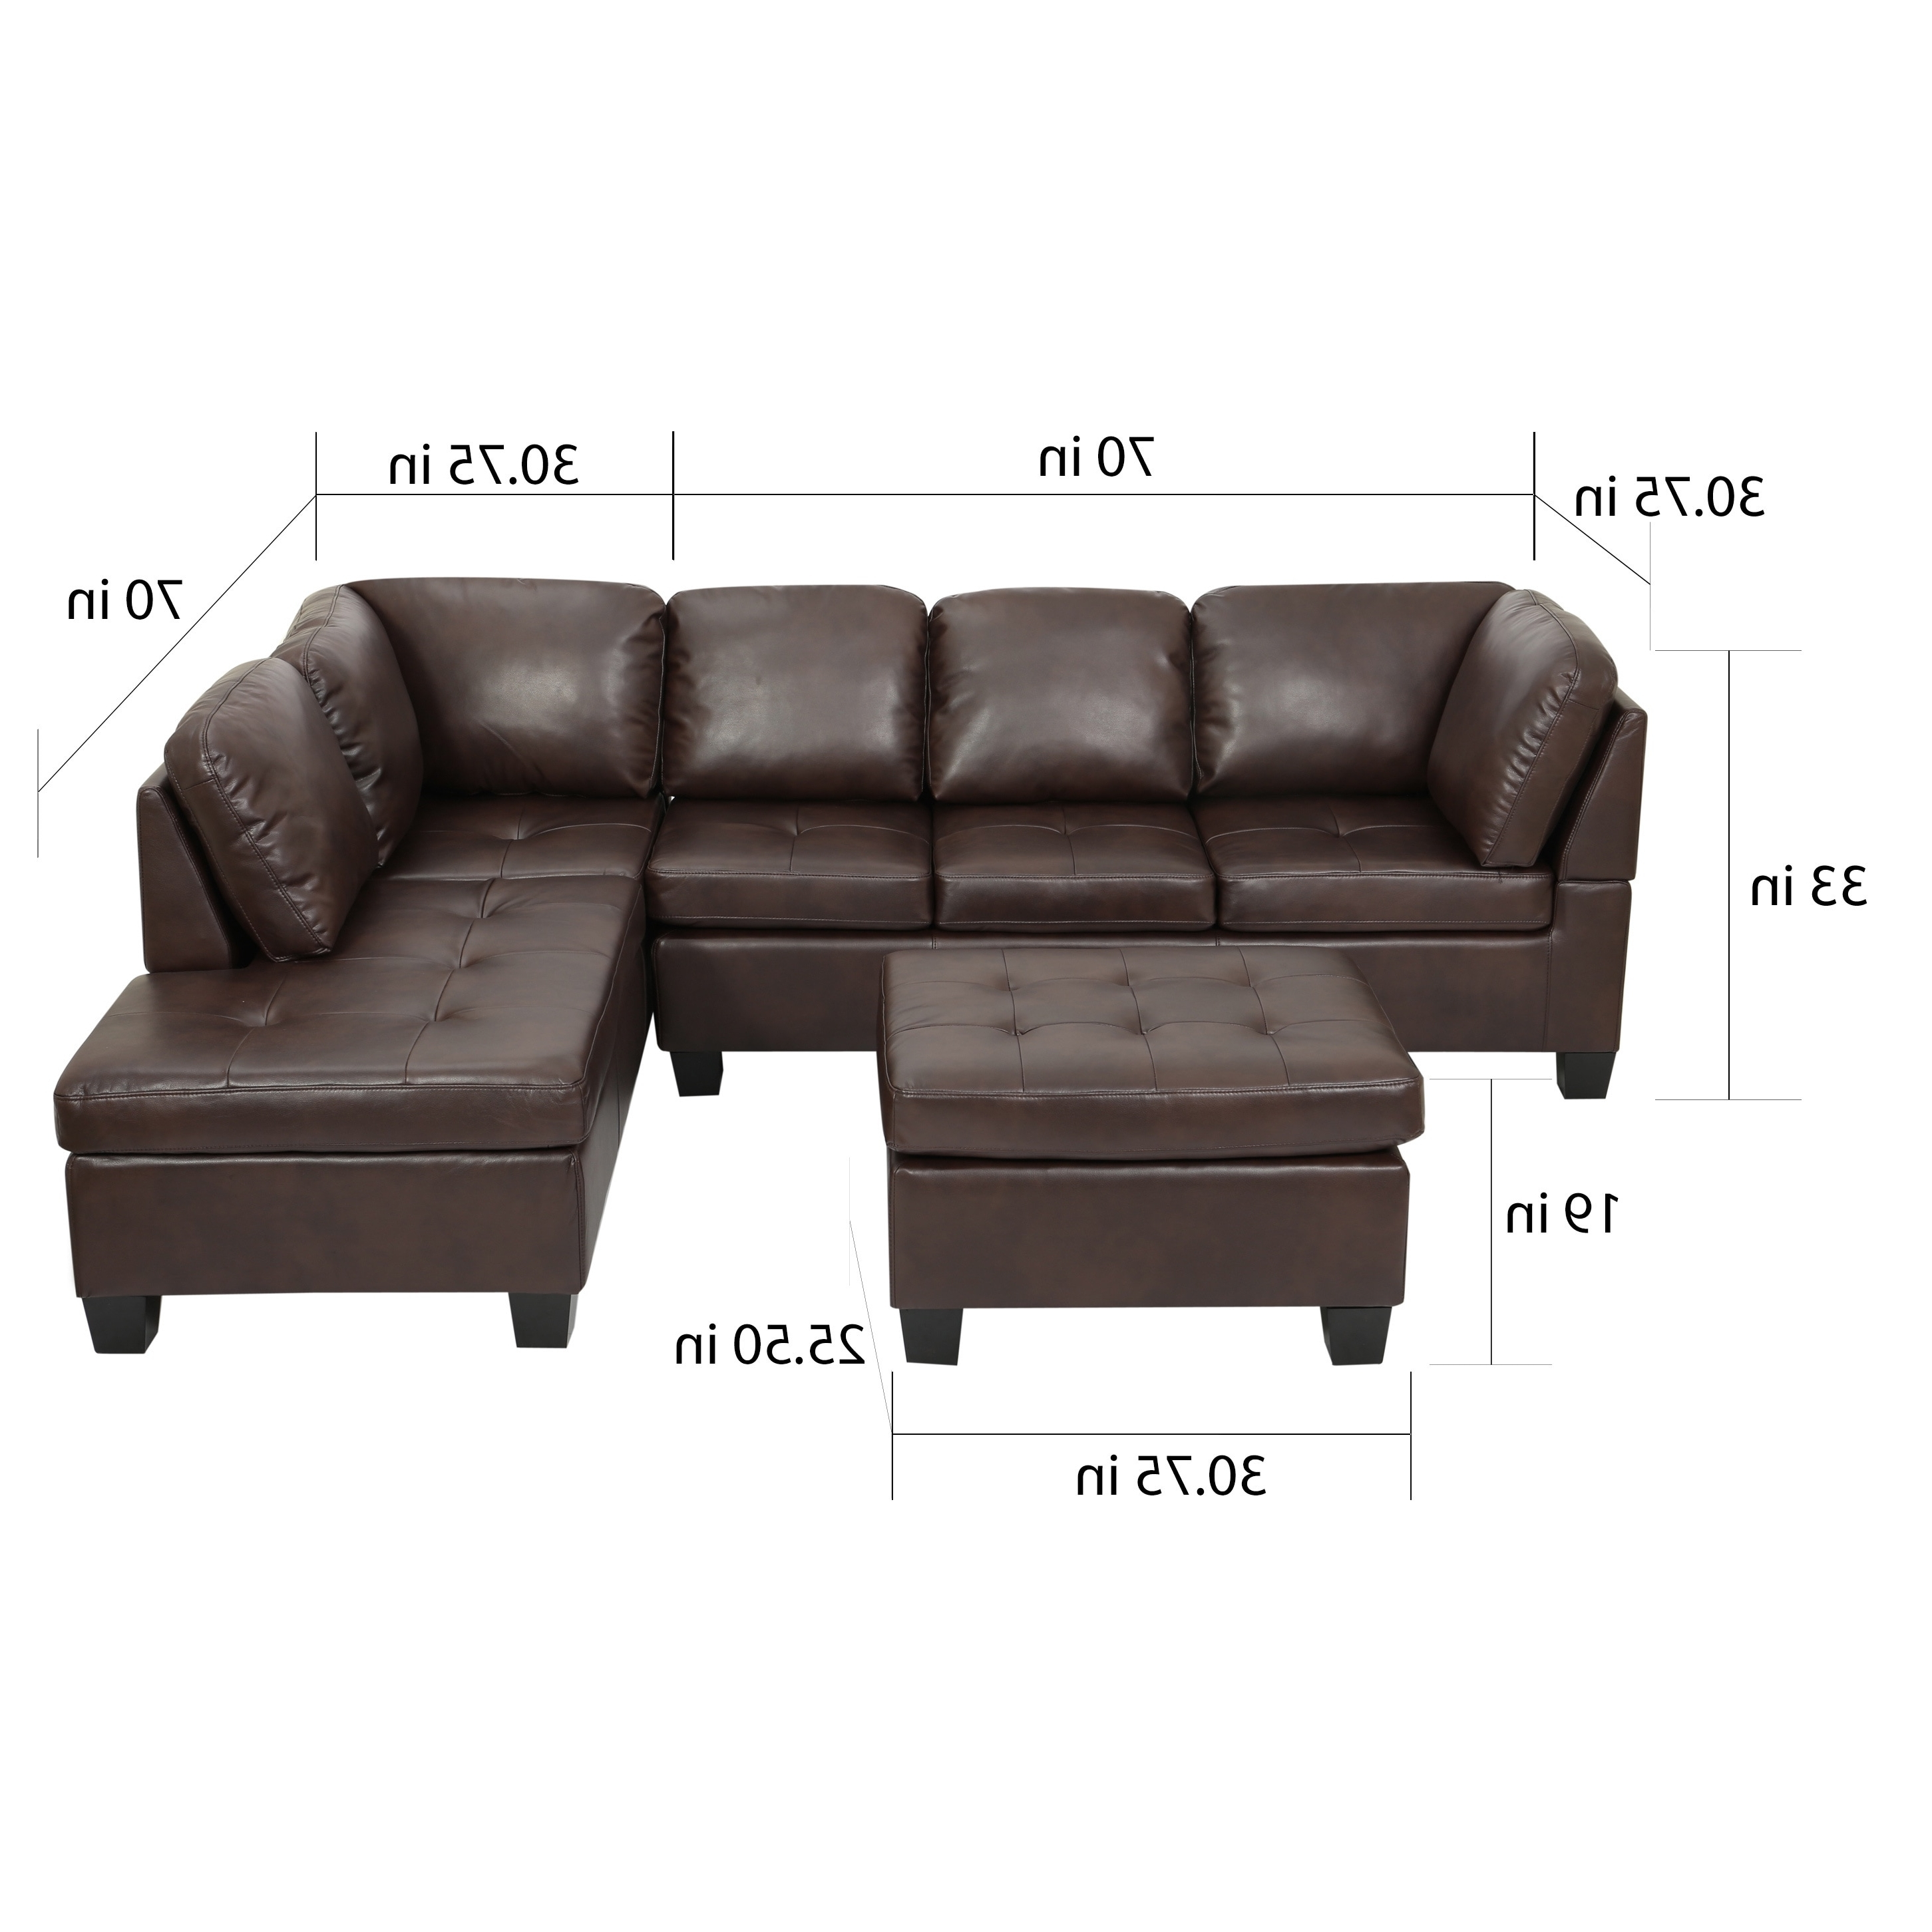 Canterbury Leather Sofas Intended For Most Recent Canterbury 3 Piece Pu Leather Sectional Sofa Setchristopher (View 16 of 20)